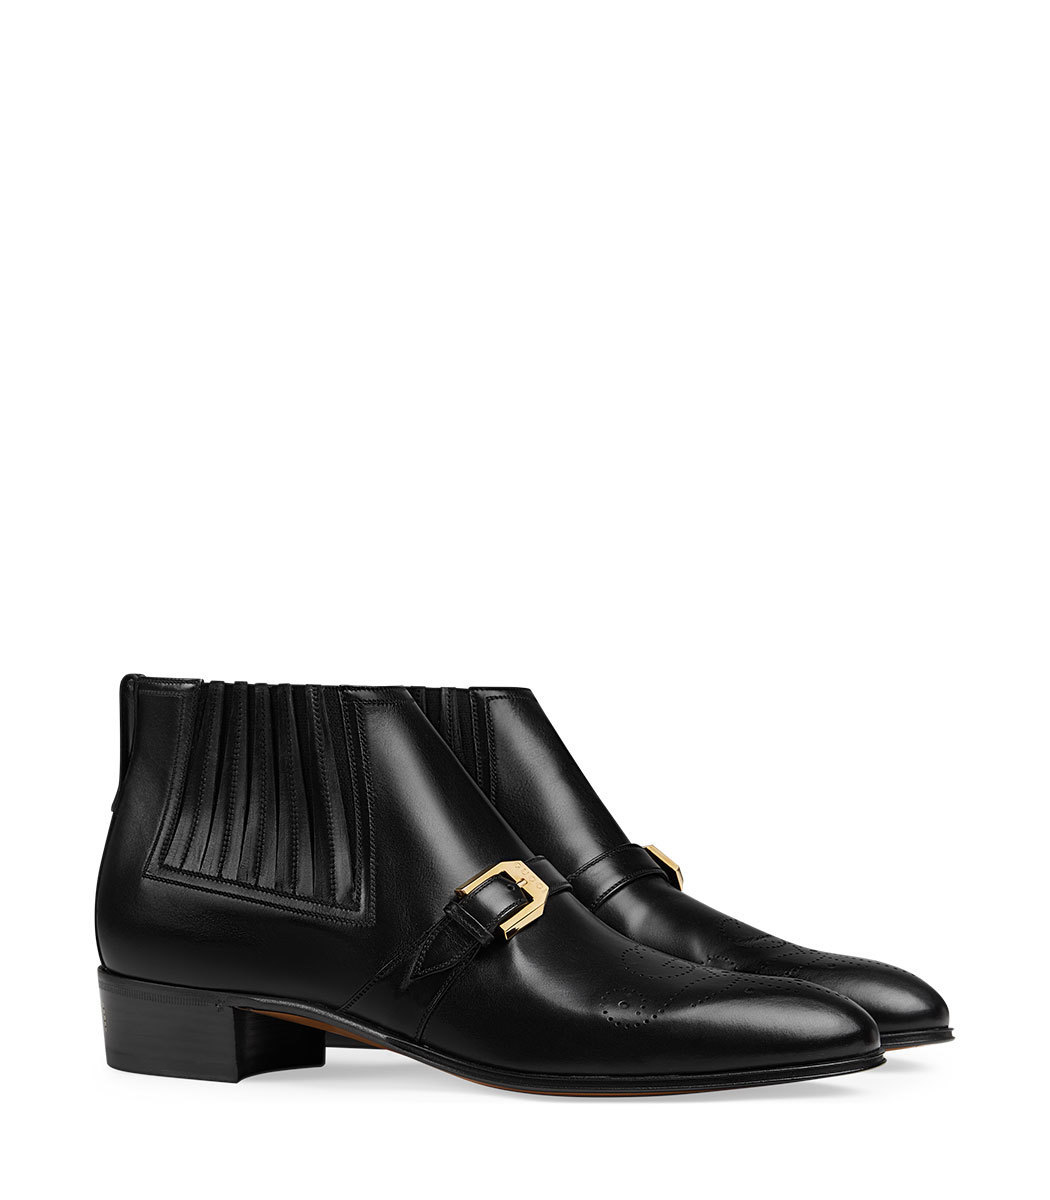 c217fbb38 Gucci Men's Leather Ankle Boot with G Brogue - ShopBAZAAR